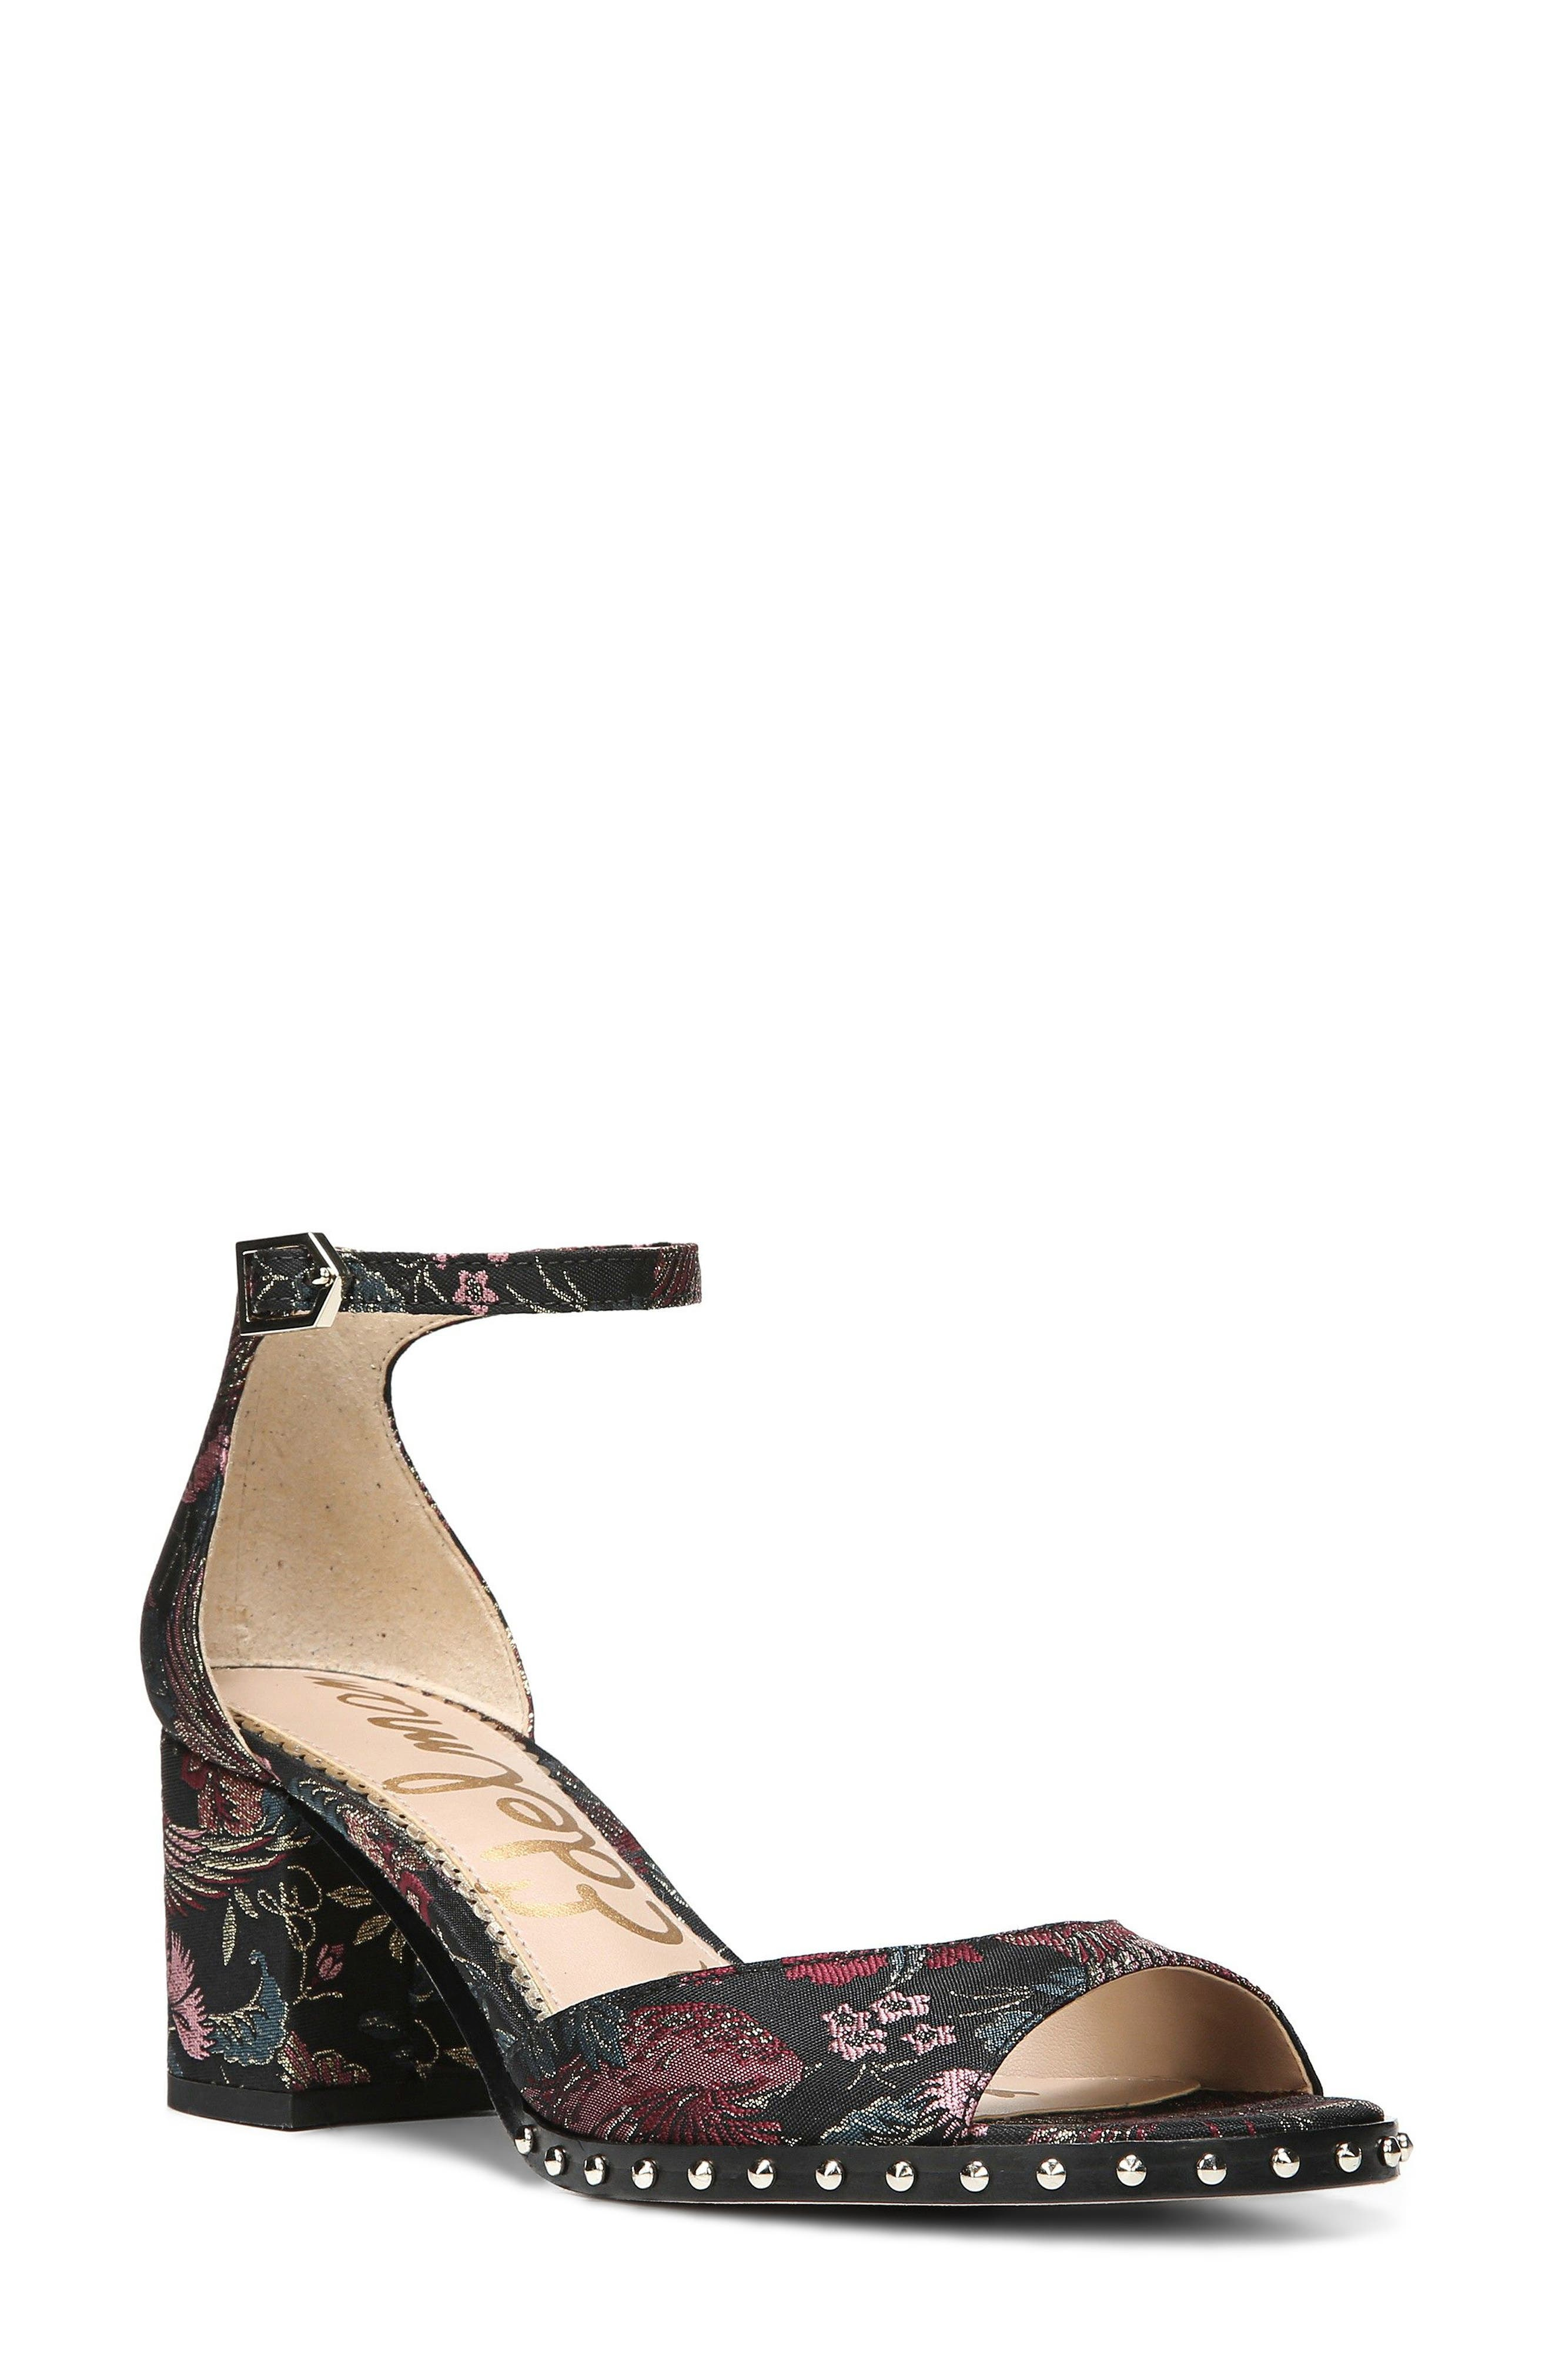 Alternate Image 1 Selected - Sam Edelman Susie Ankle Strap Sandal (Women)